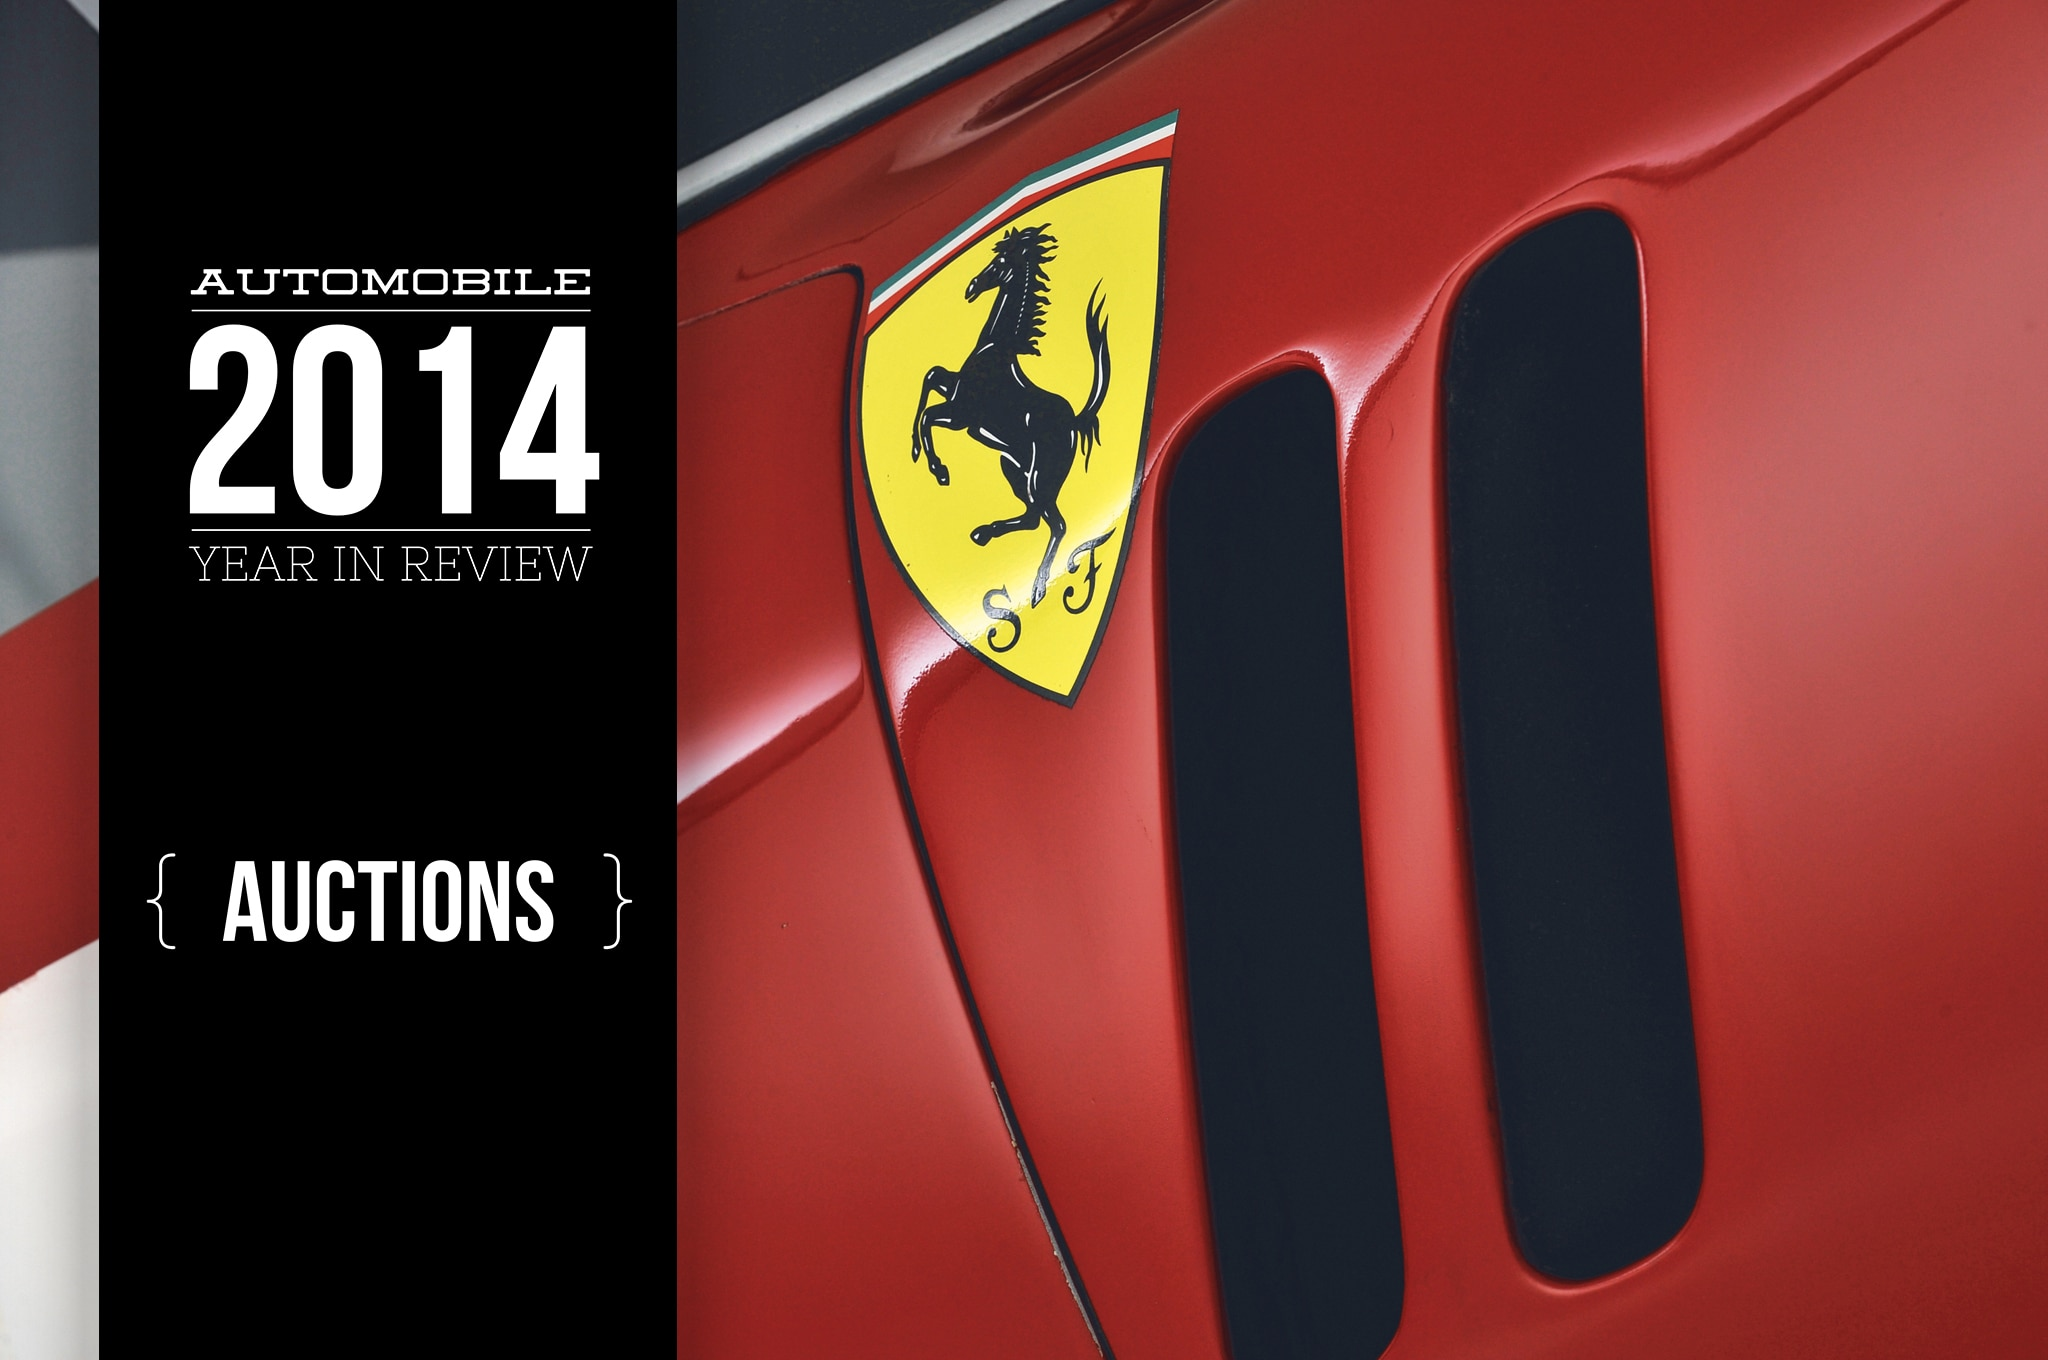 2014 Year In Review Auctions